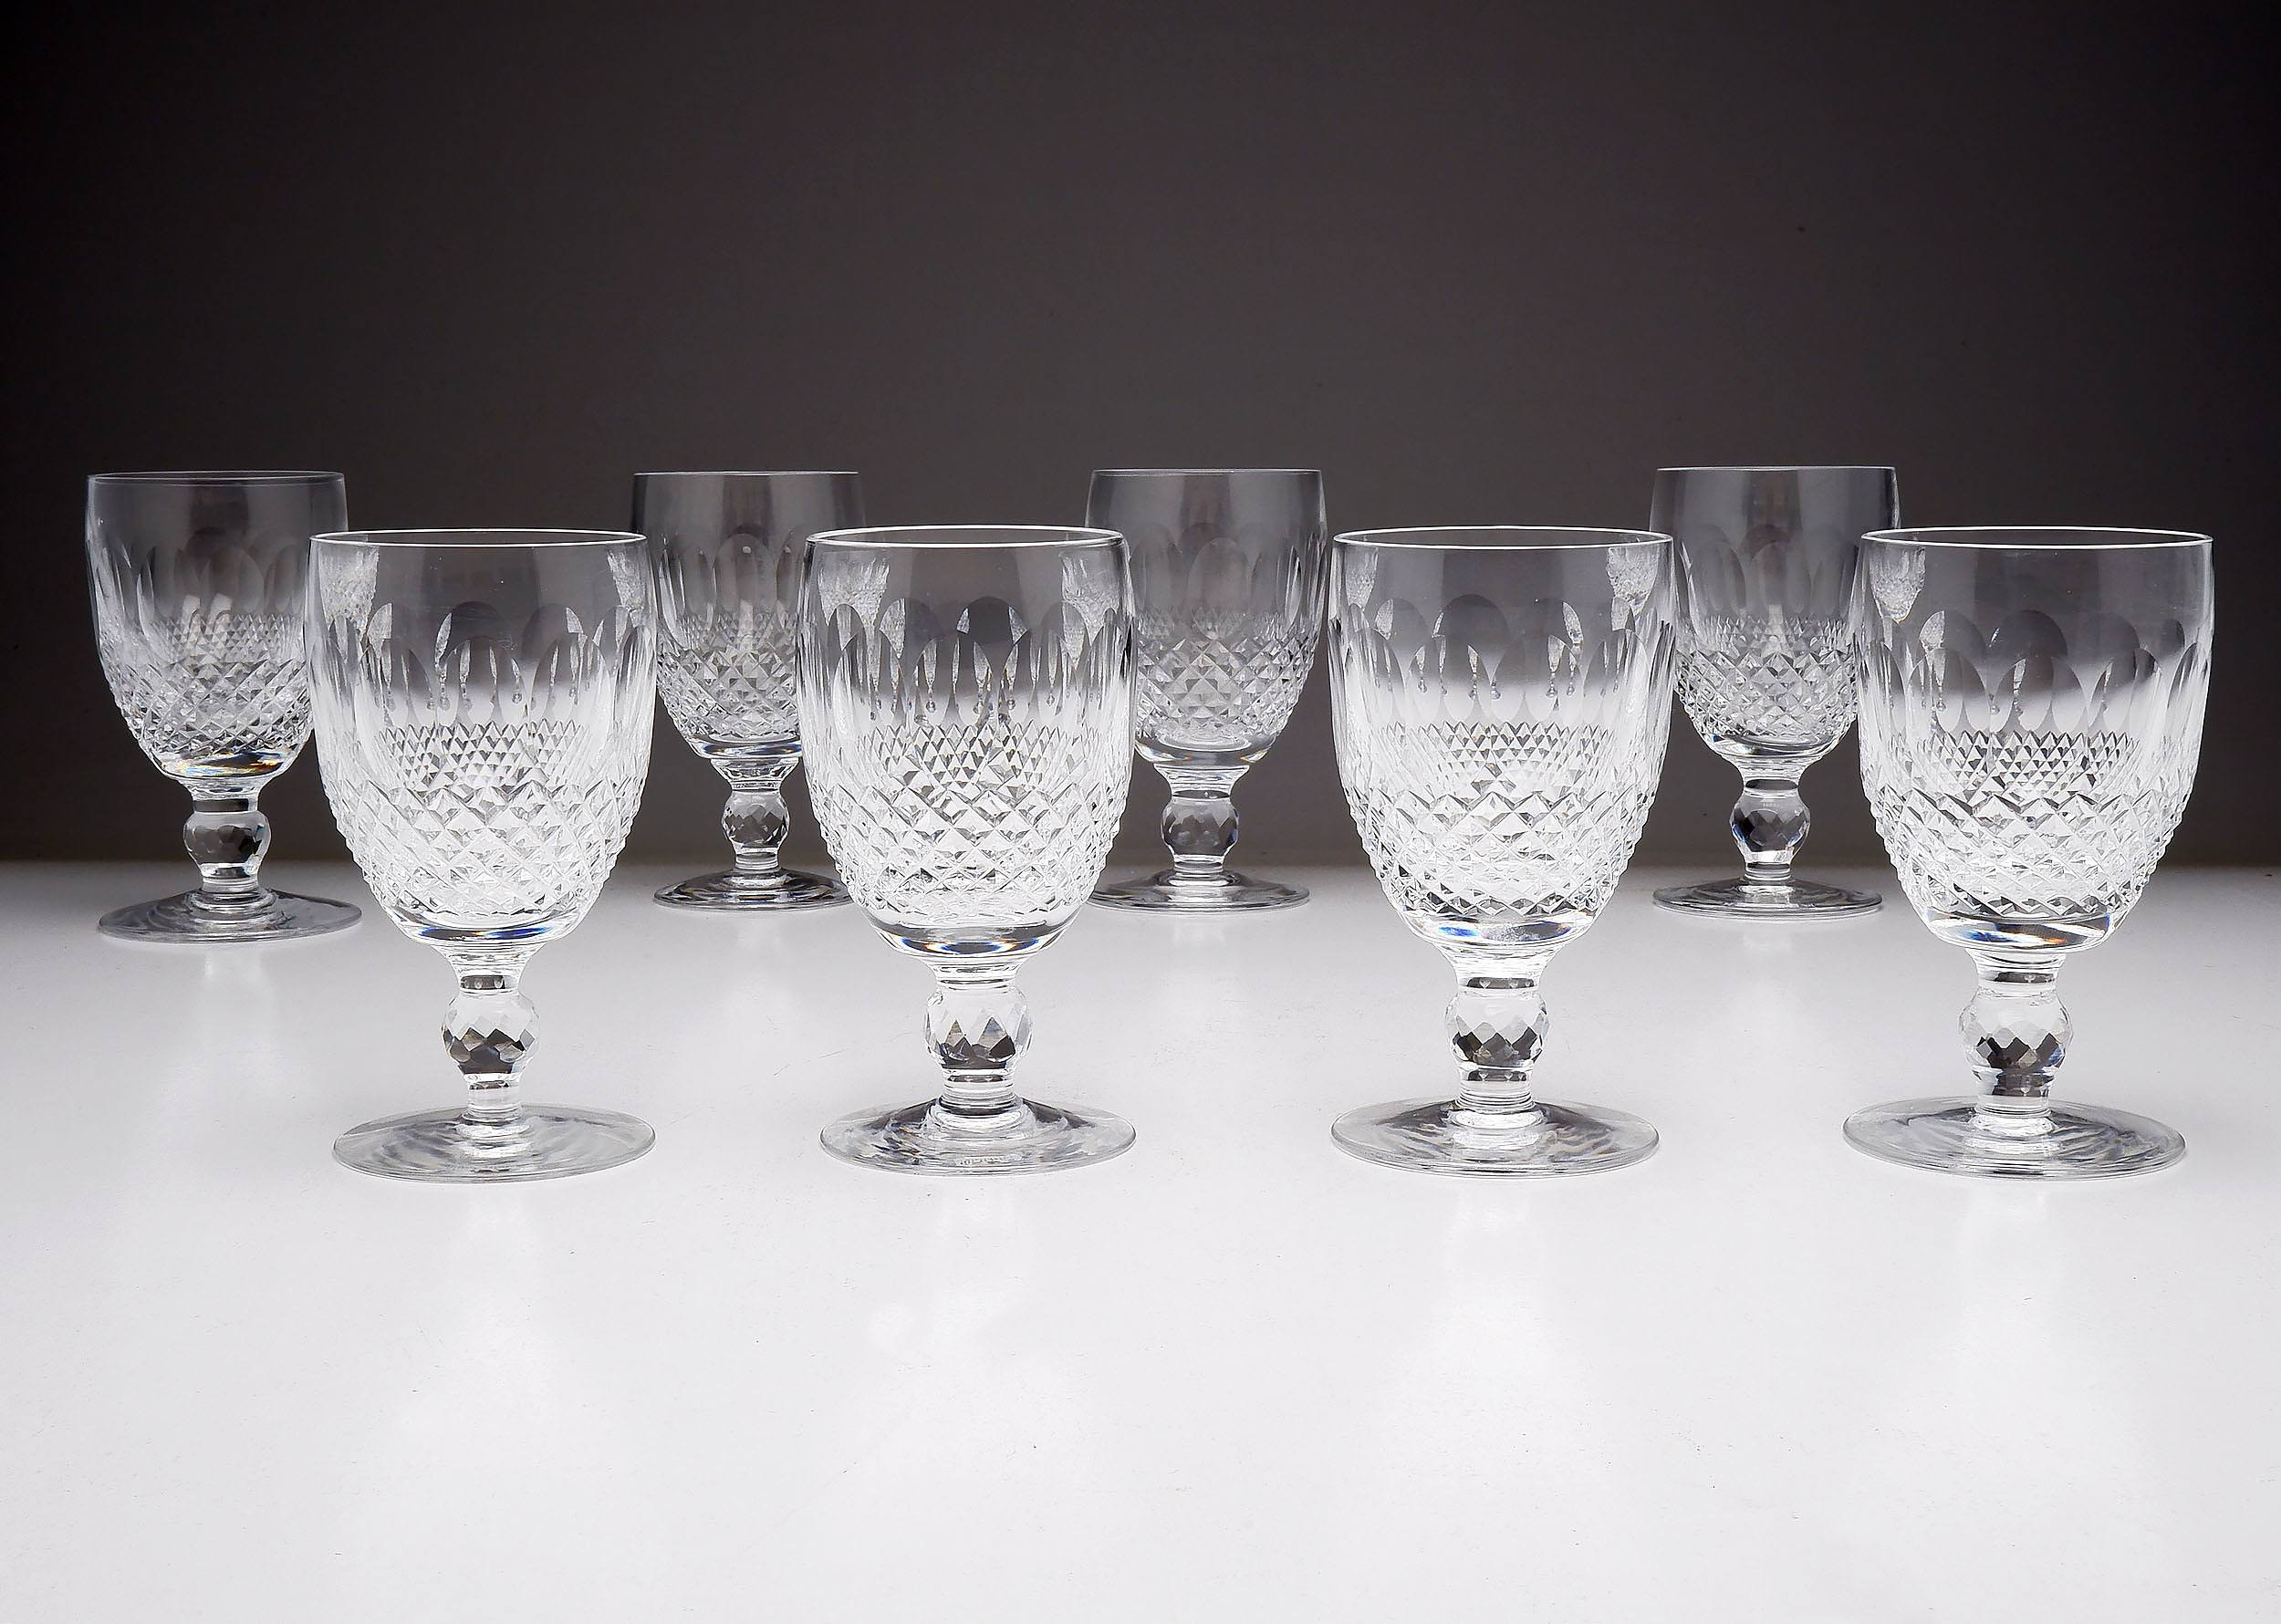 '8 Waterford Crystal Port Glasses'